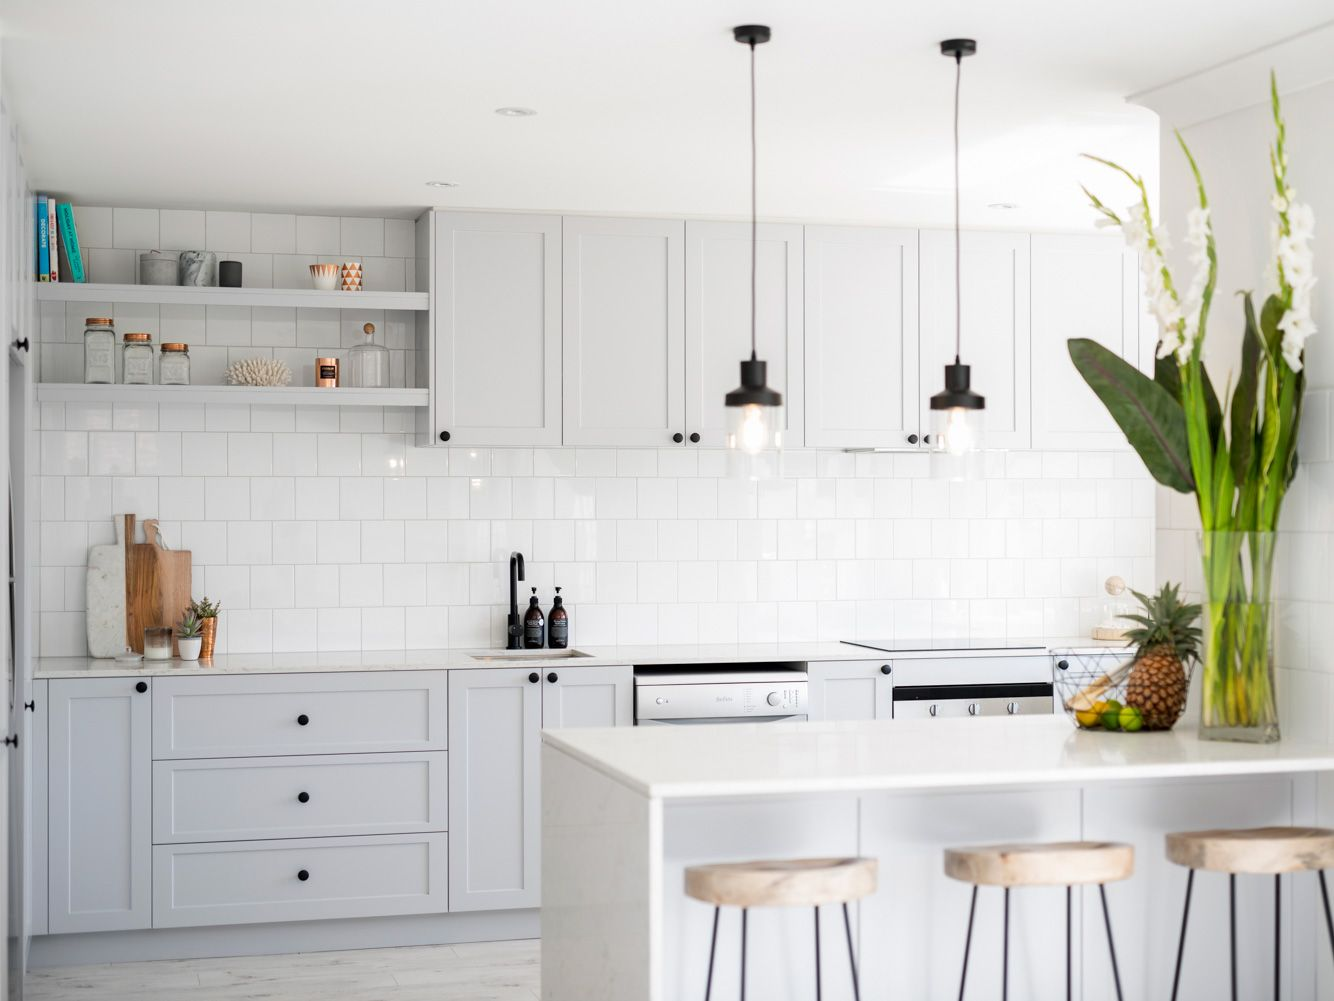 Kitchen design 101: Key layout considerations | Sinks and Kitchens